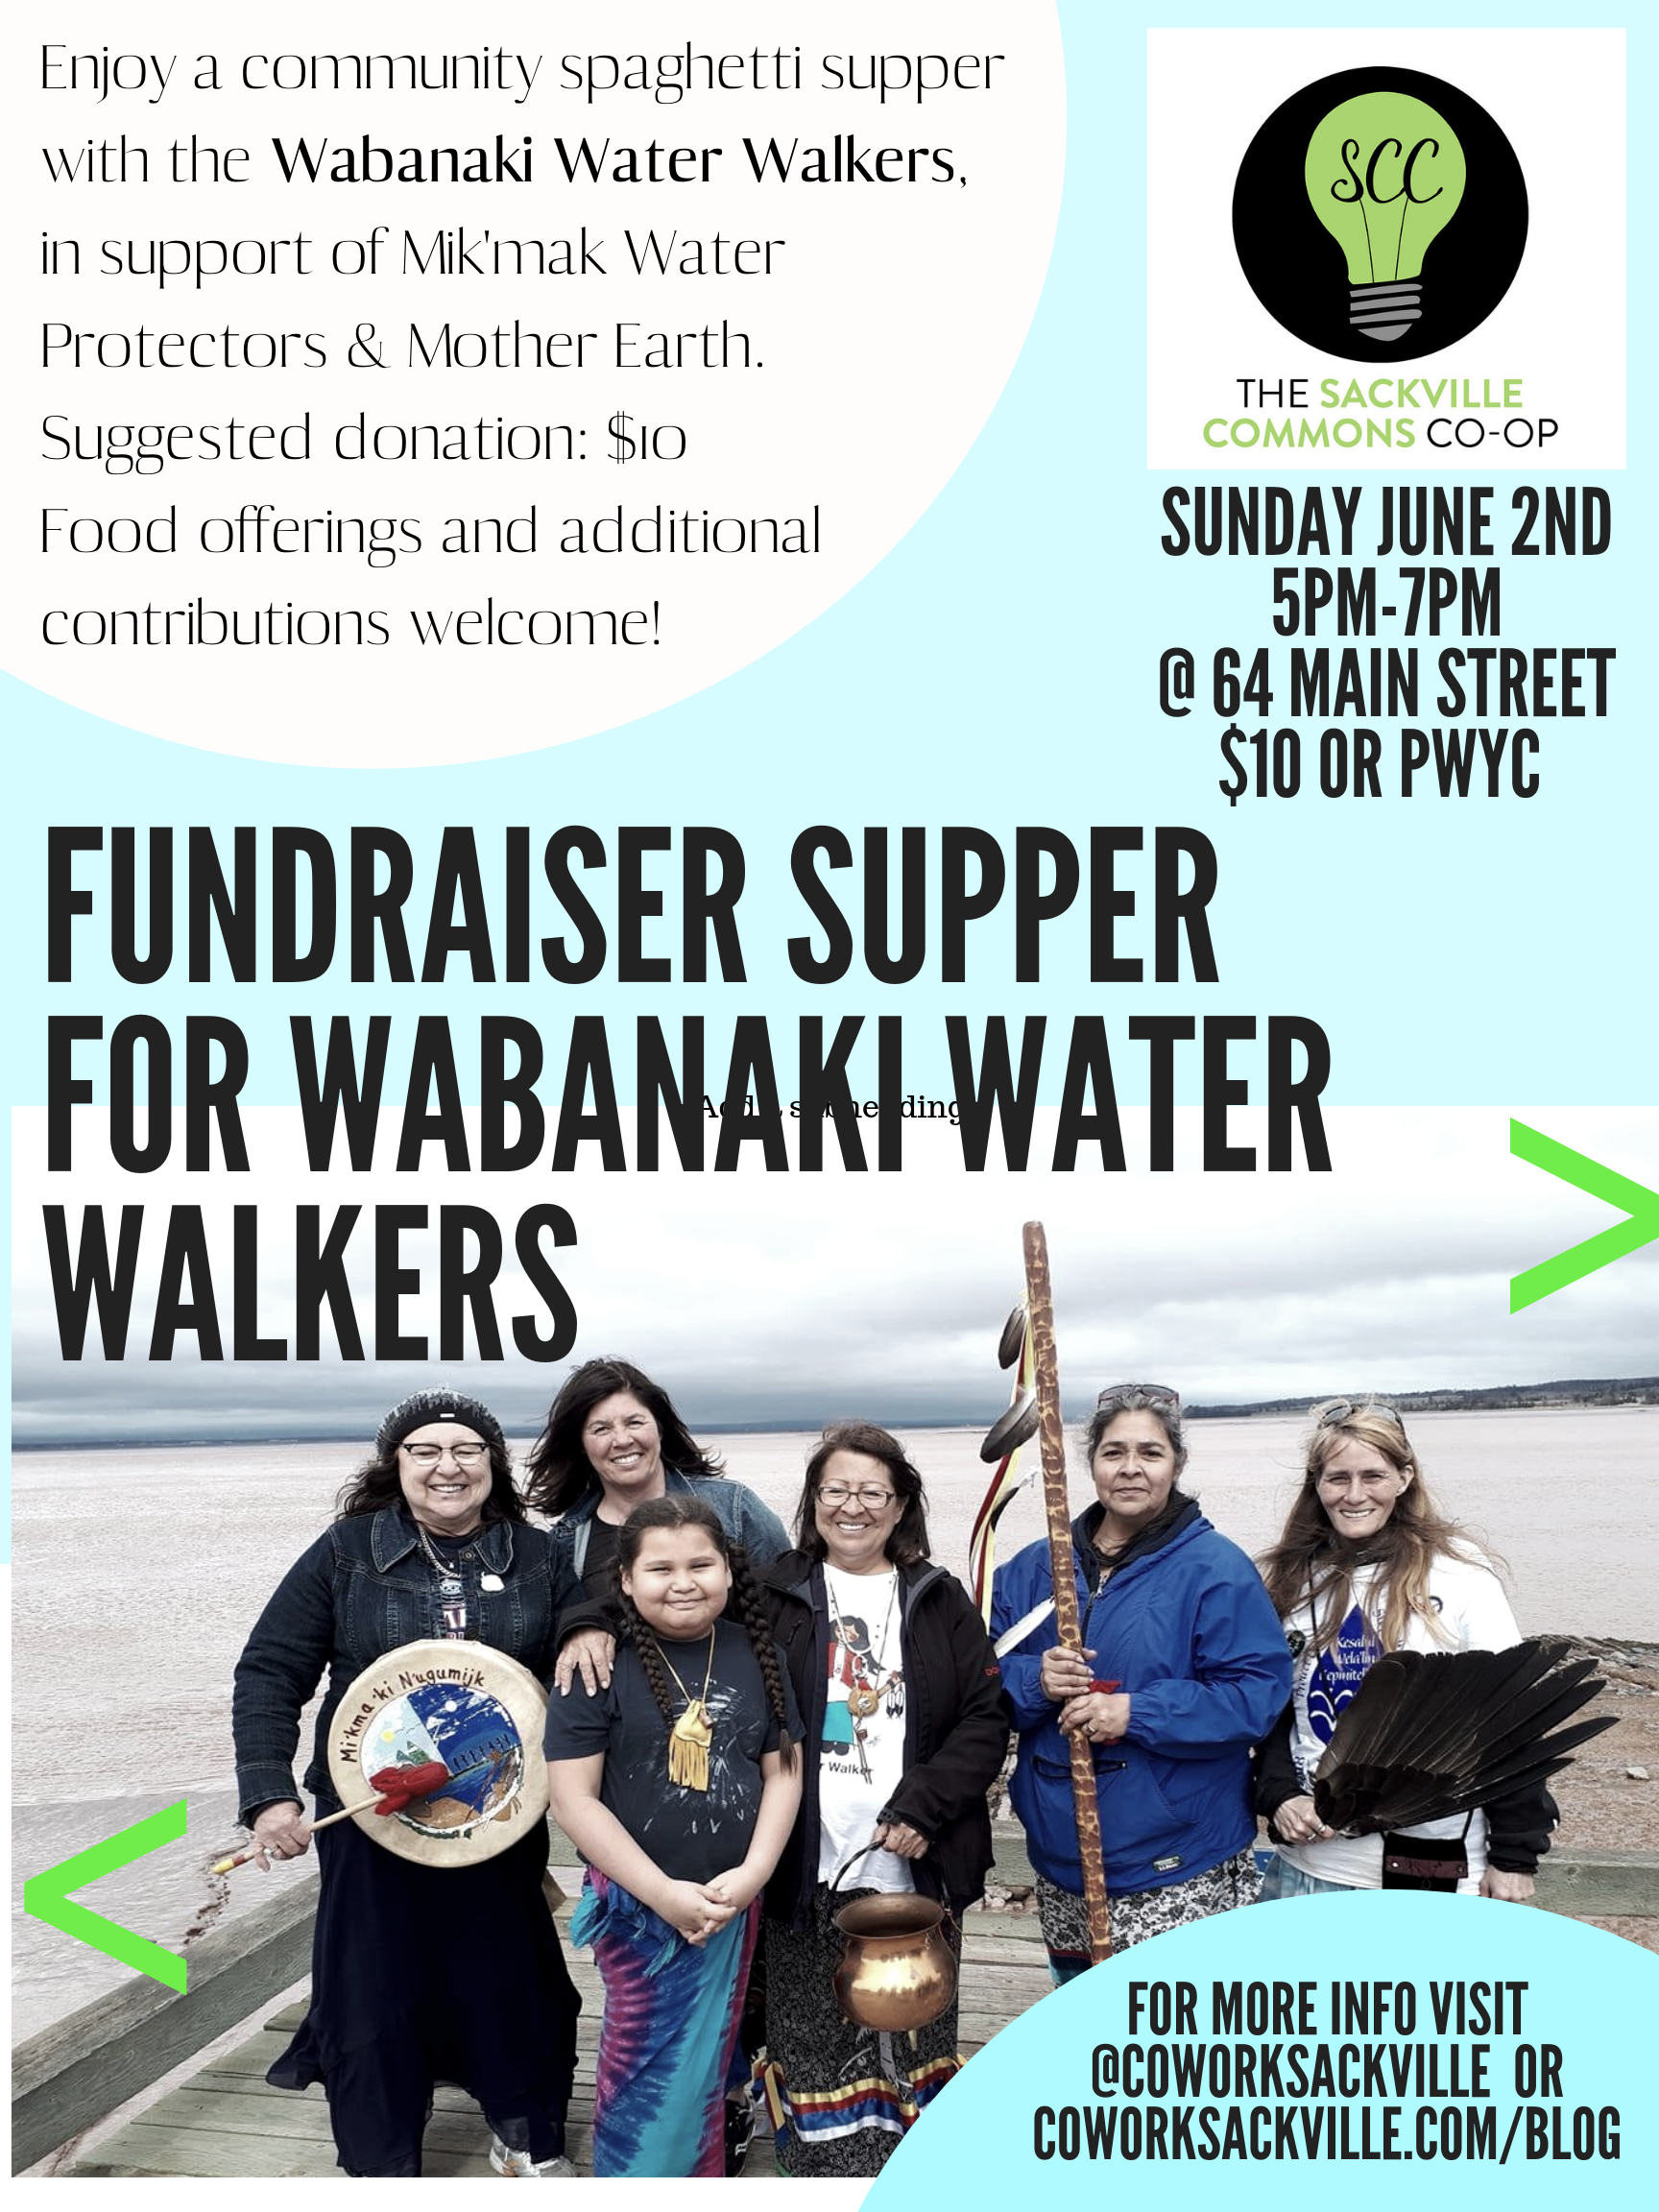 Fundraiser Supper for the Wabanaki Water Walkers